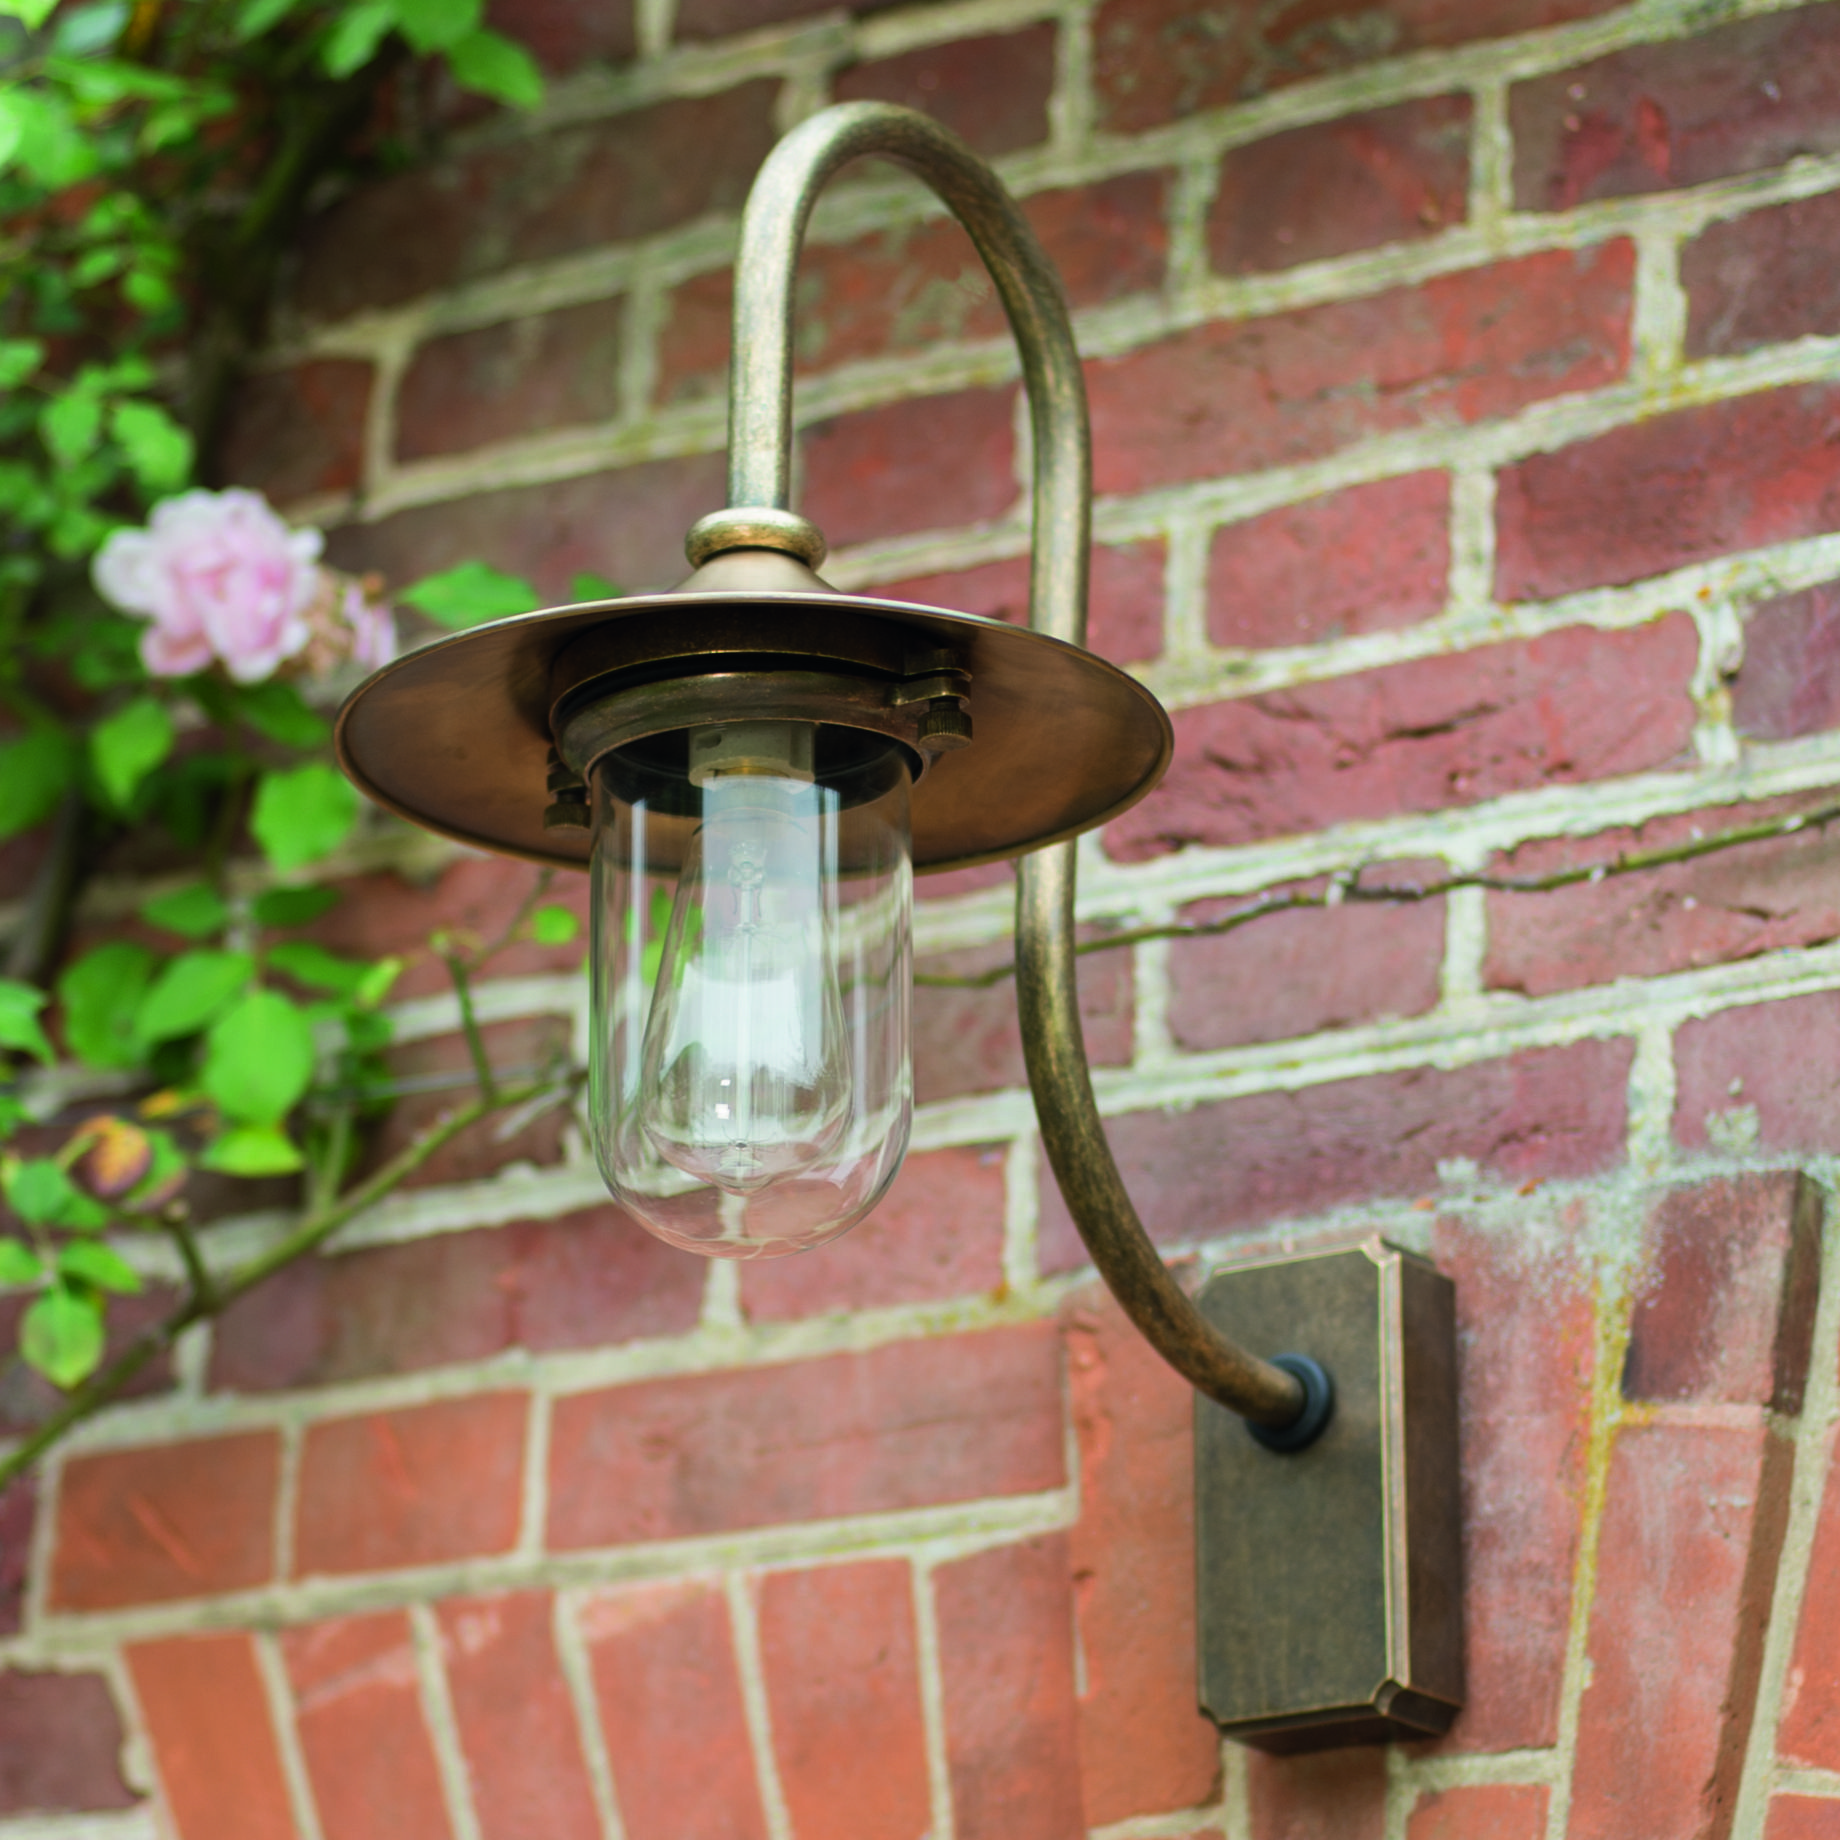 A striking outdoor light handmade in solid brass our granary a striking outdoor light handmade in solid brass our granary wall mozeypictures Image collections